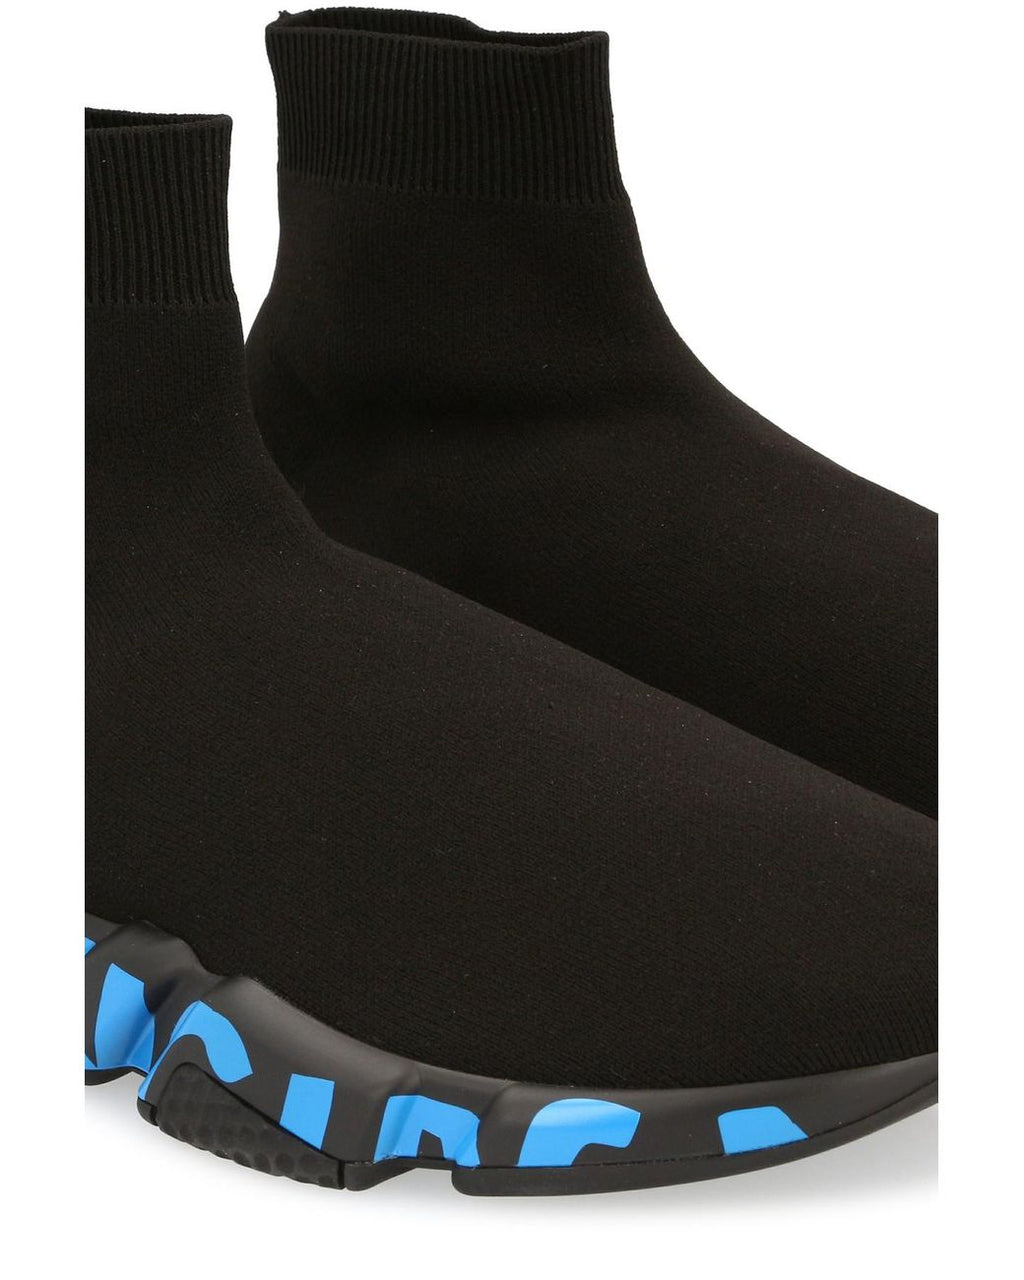 BALENCIAGA Speed Graffiti Sneakers Black/Blue - Maison De Fashion